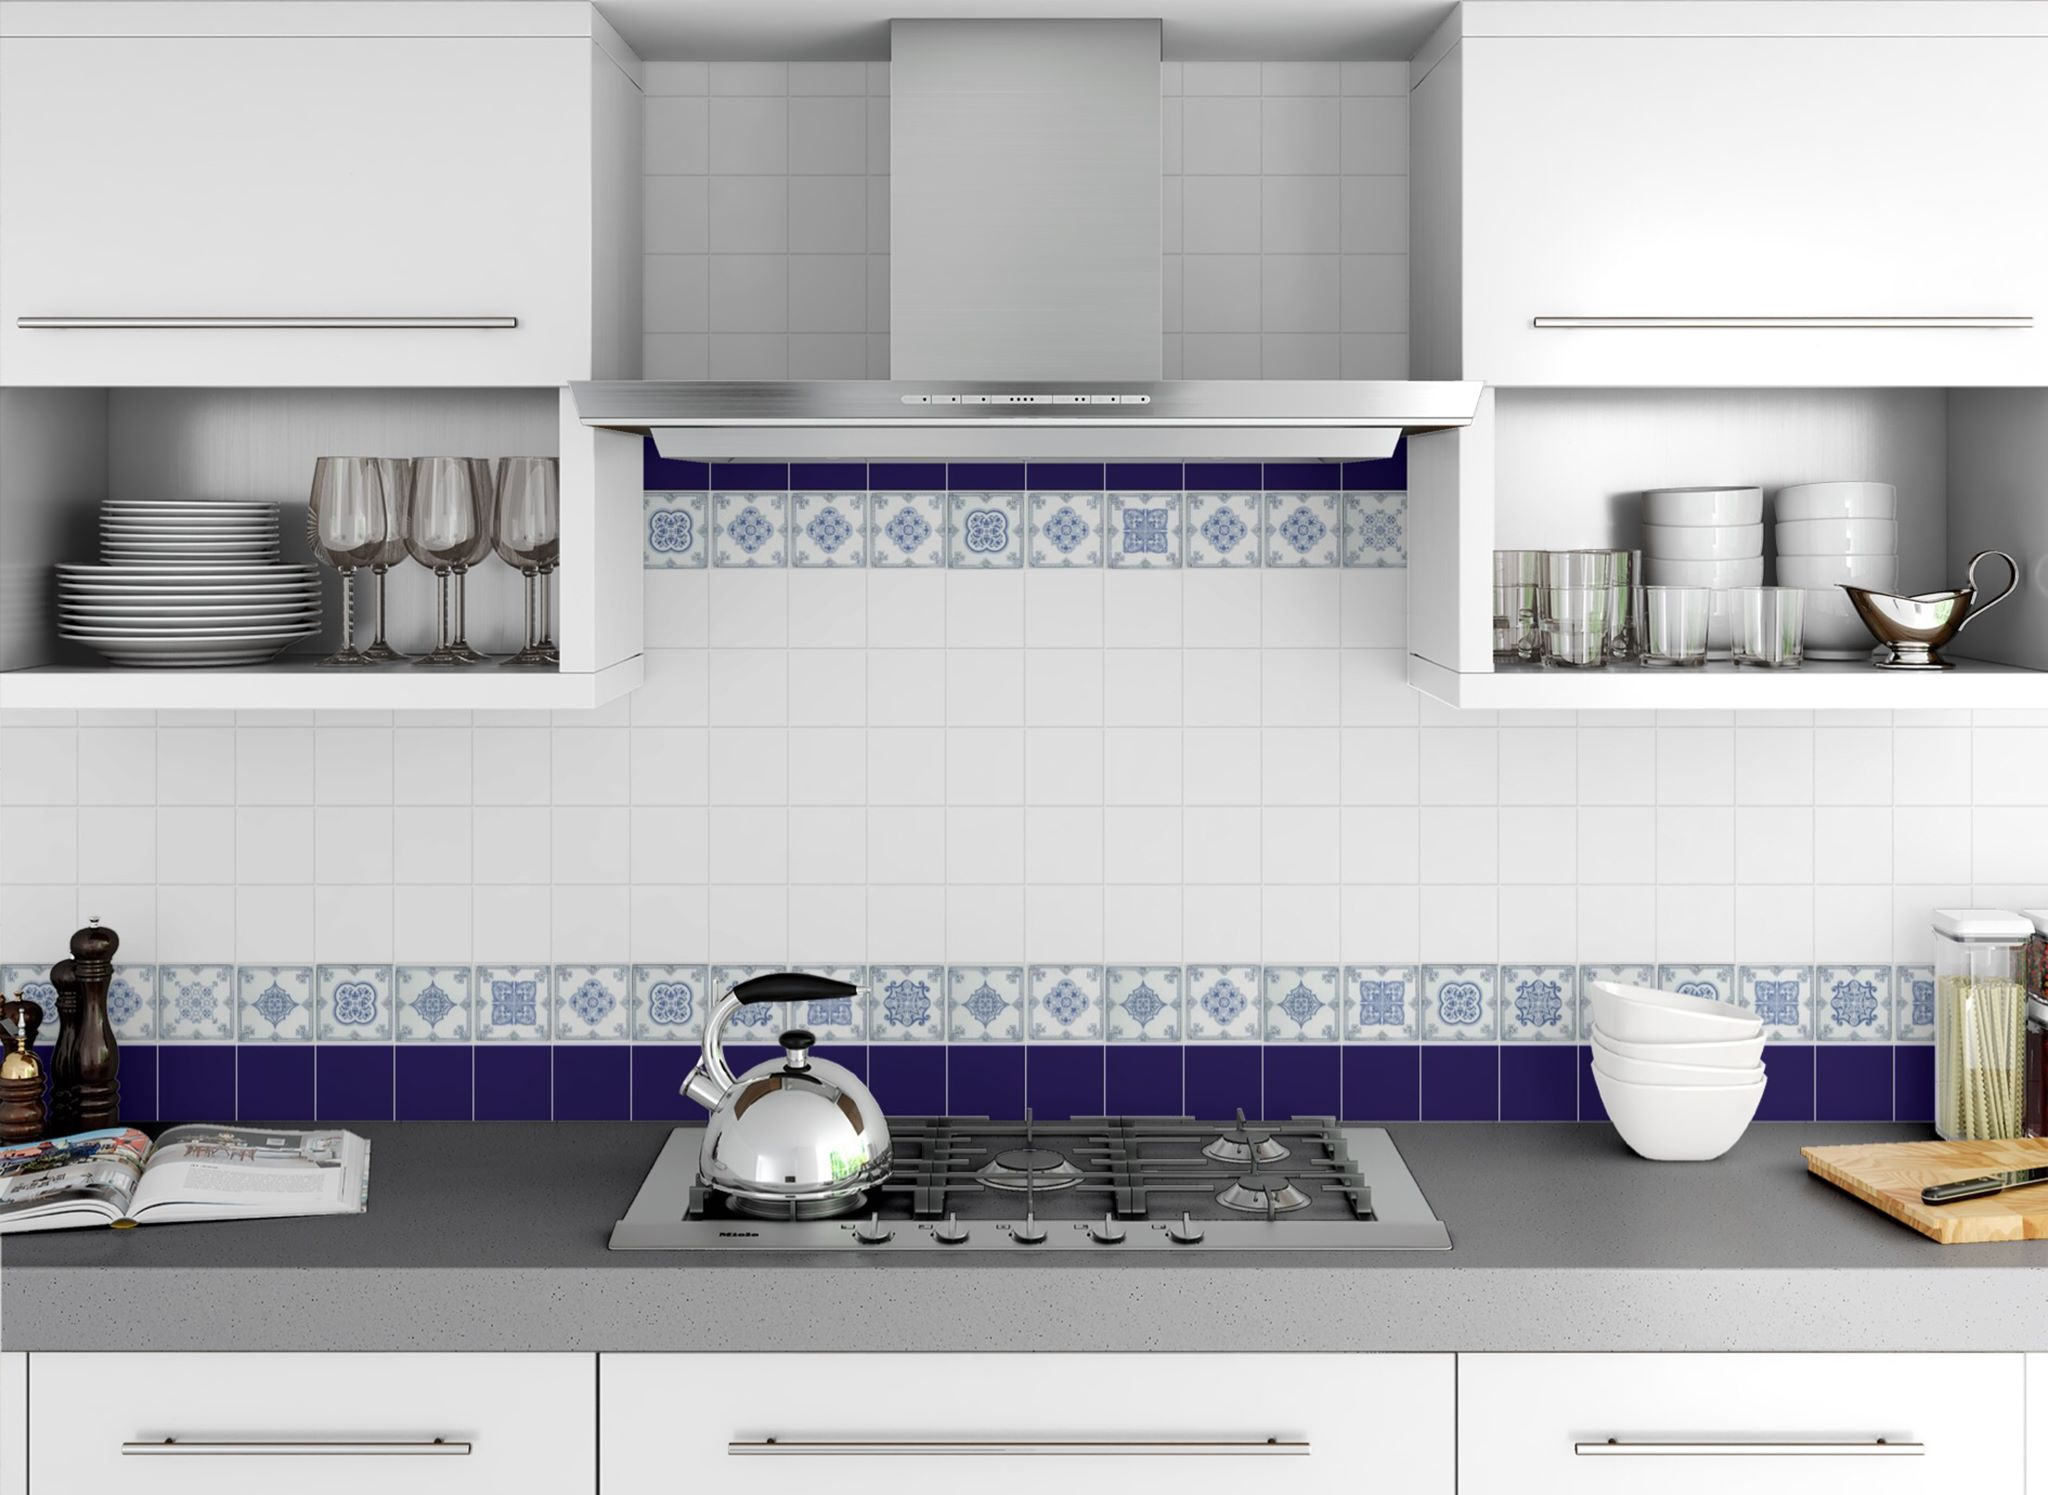 Casual design of the kitchen with blue framing of the splashback area